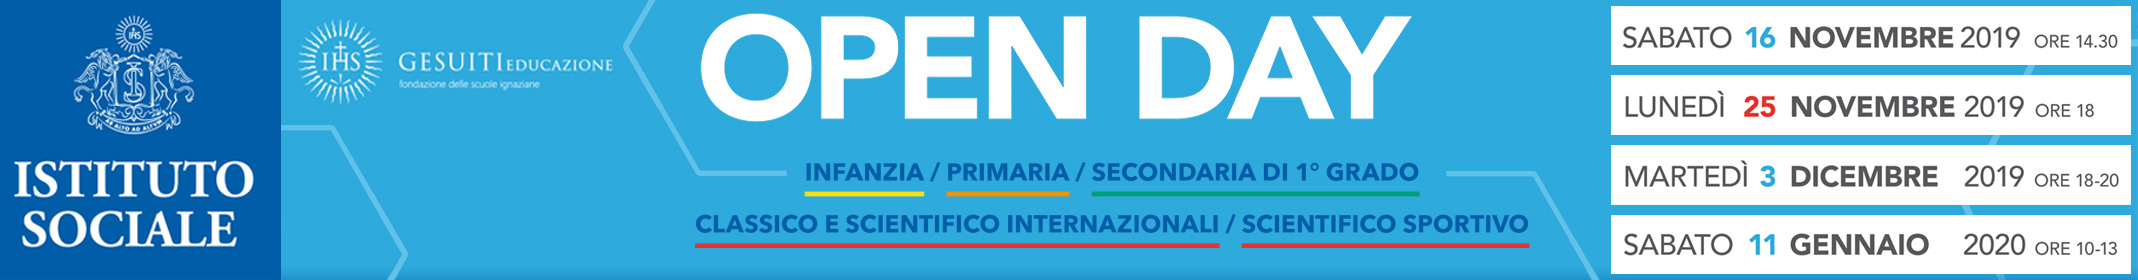 OPEN-DAY-istituto-sociale-2019